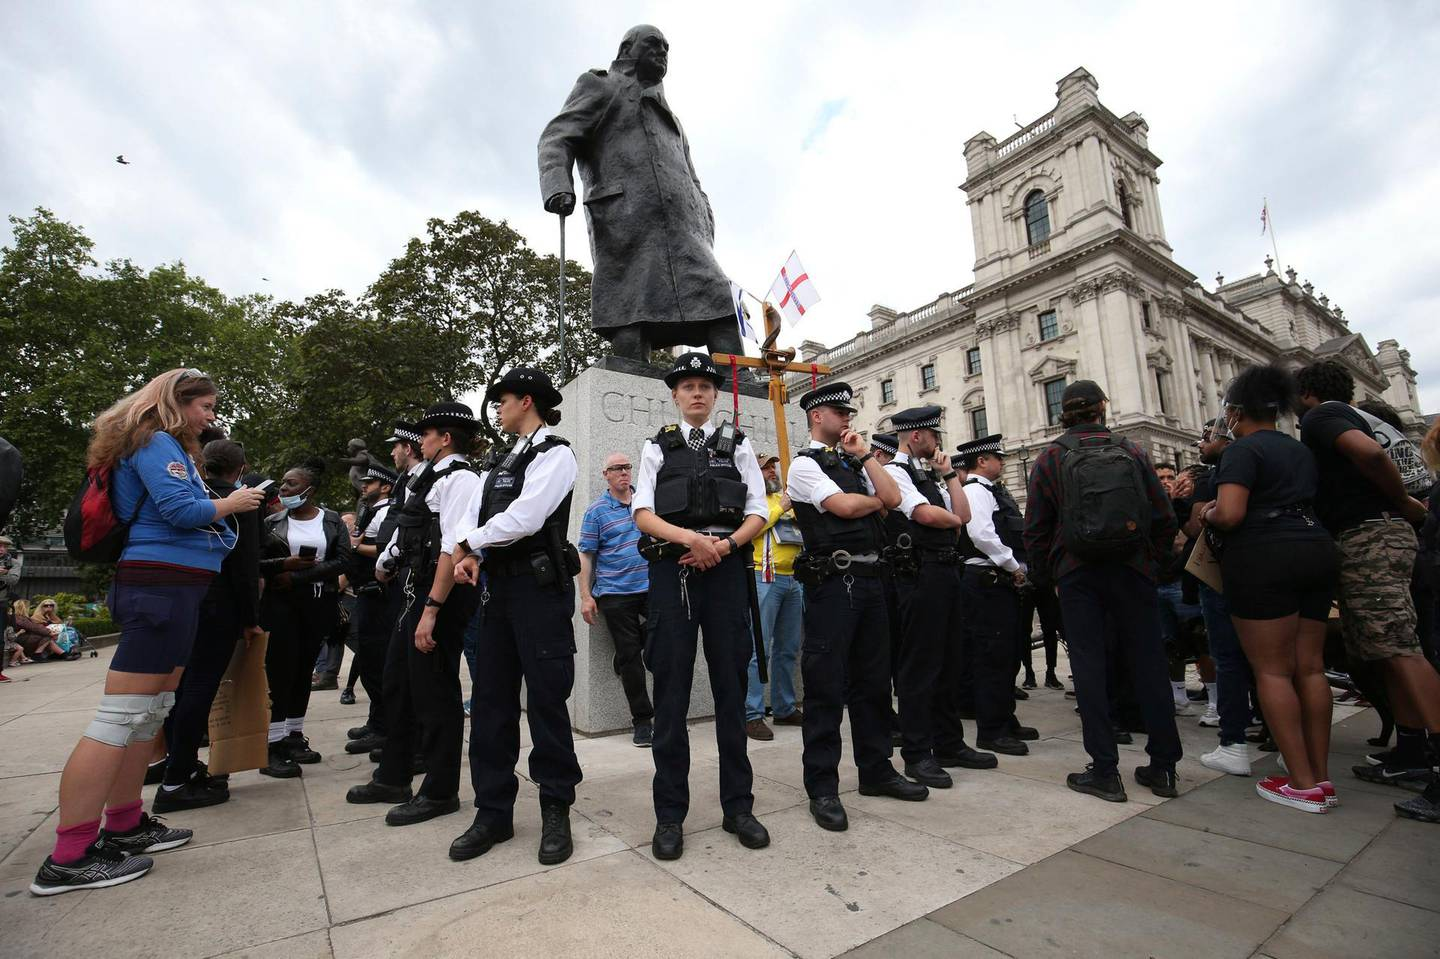 Police stand around the Winston Churchill statue ahead of a rally at the Nelson Mandela statue in the square, to commemorate George Floyd, on the day of his funeral, in Parliament Square, London, Tuesday June 9, 2020. The recent death of George Floyd who died after a U.S. officer pressed his knee into his neck, has prompted investigations into the lorded promotion of many historical figures who gave money to philanthropic enterprises, gave their names to British city areas, statues and landmarks, but gained much of their wealth from the slave trade. (Jonathan Brady/PA via AP)